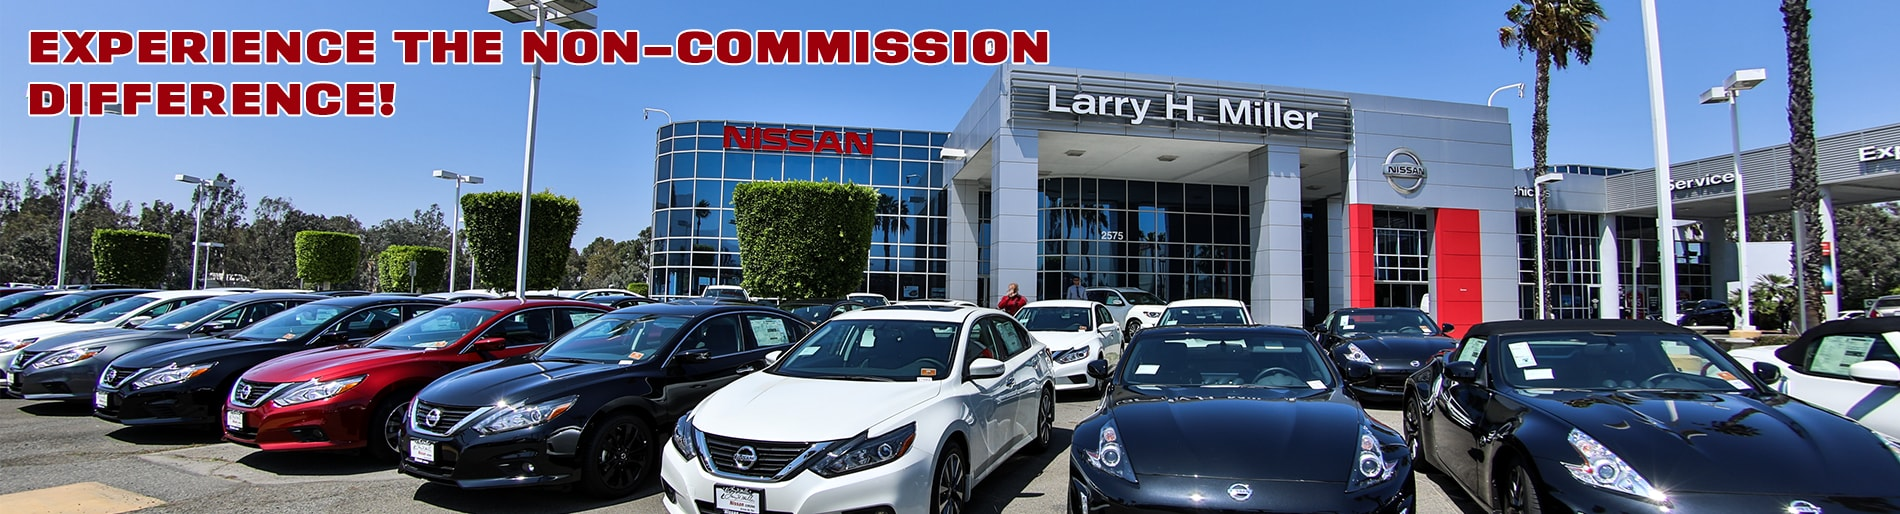 Larry H Miller Nissan Corona Non-Commission Difference